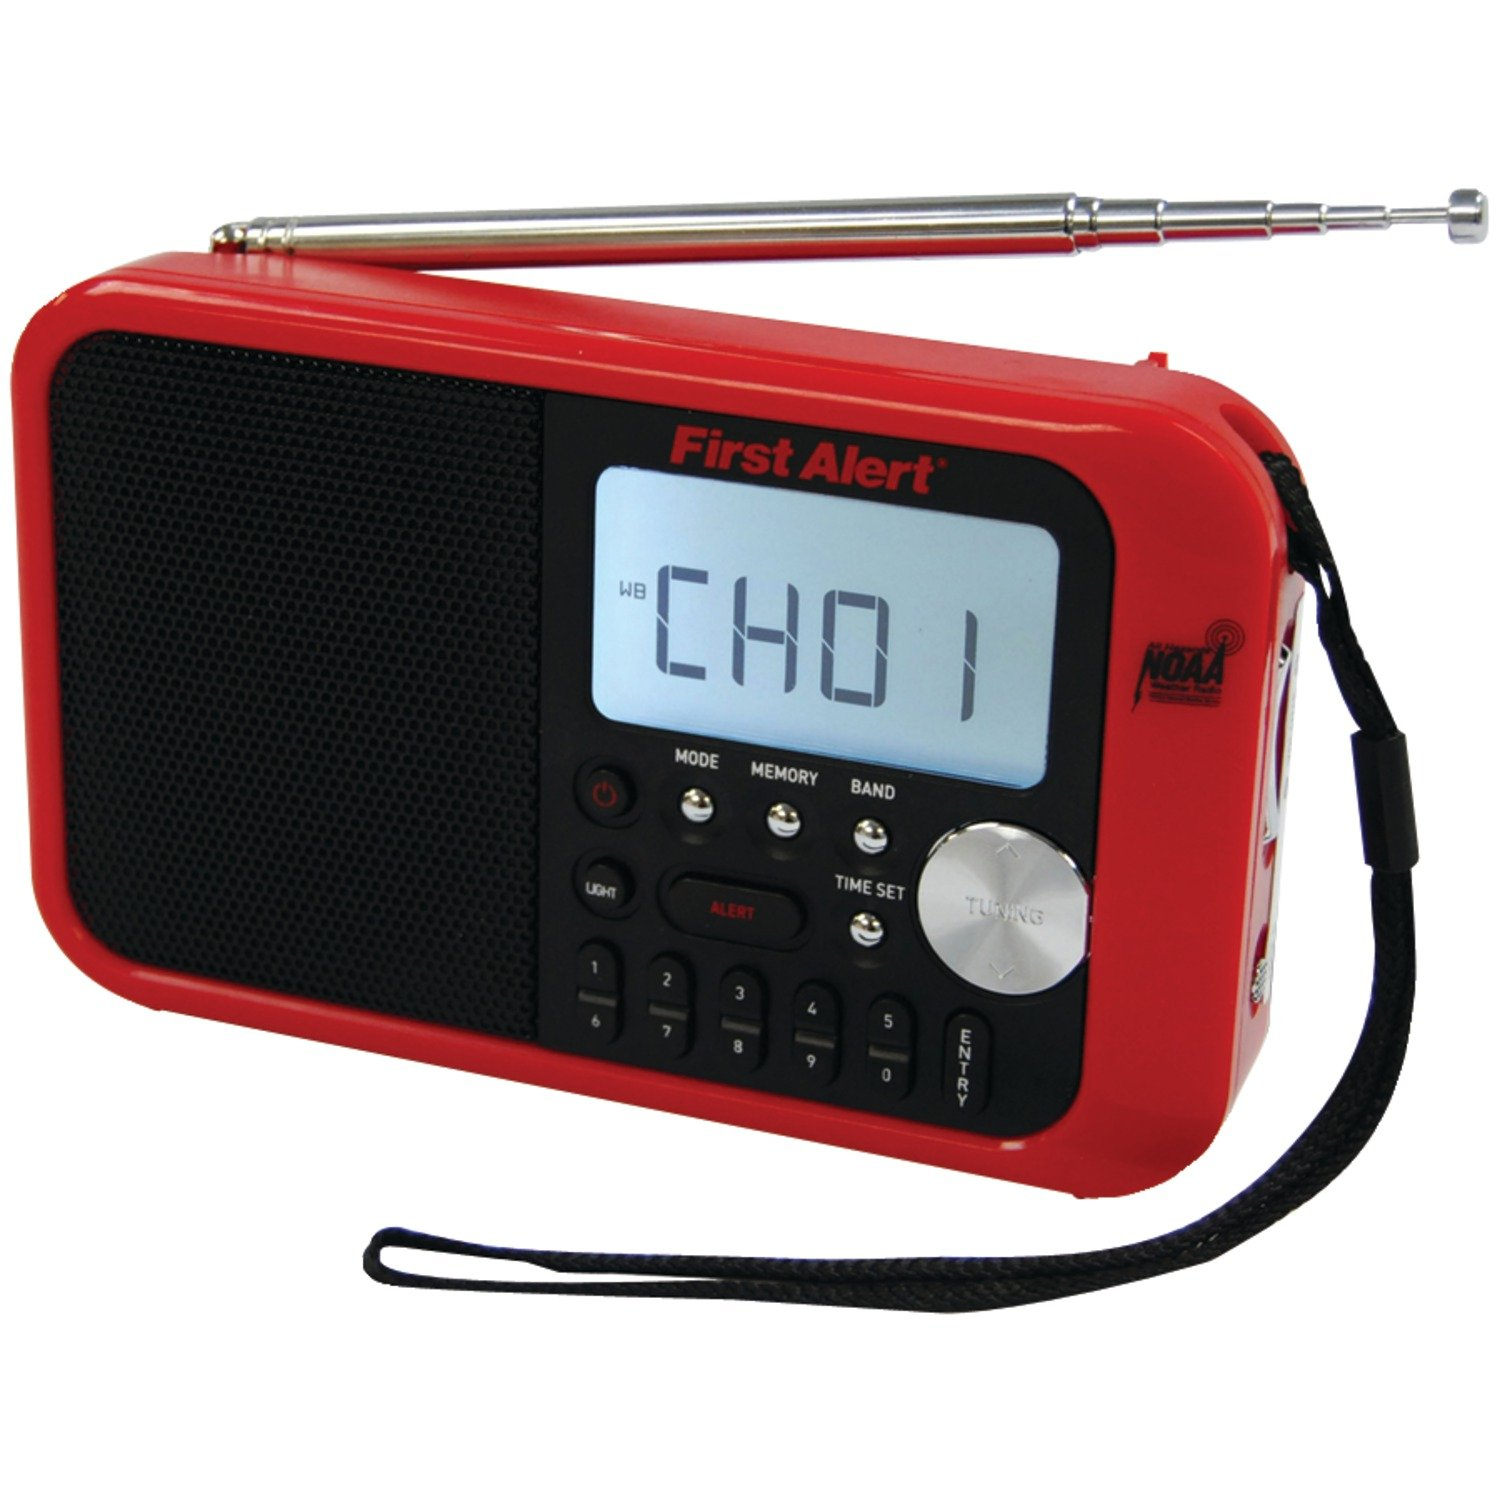 First Alert SFA1100 AM/FM Weather Band Radio with Weather Alert and Clock